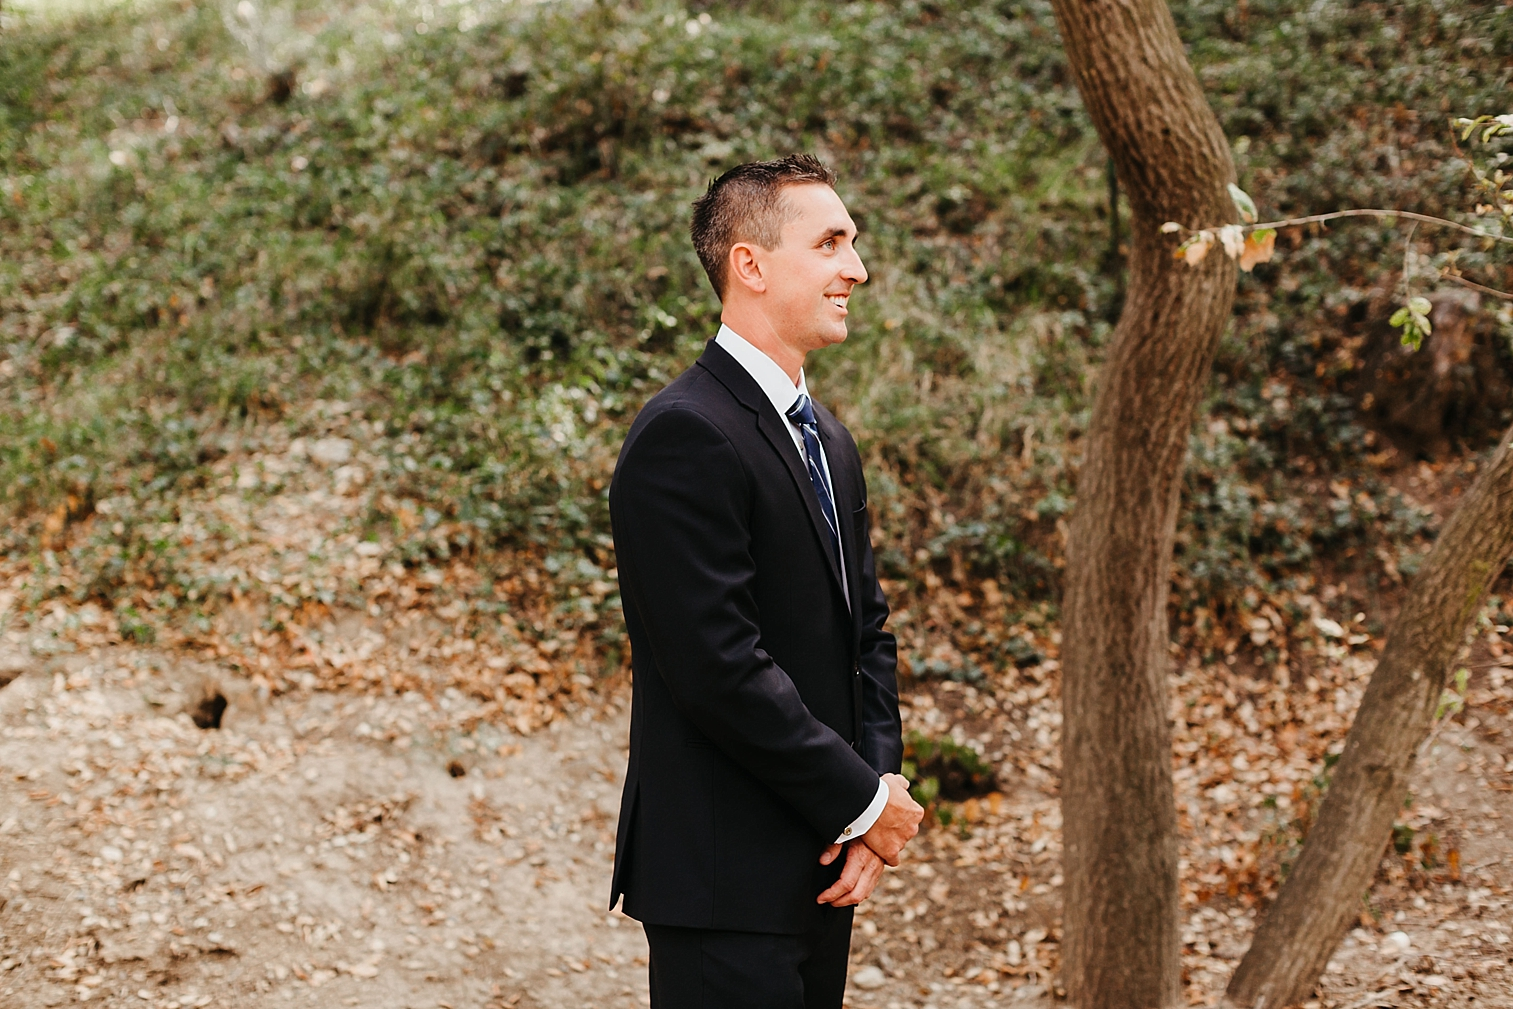 Rancho-Las-Lomas-Wedding-40.jpg